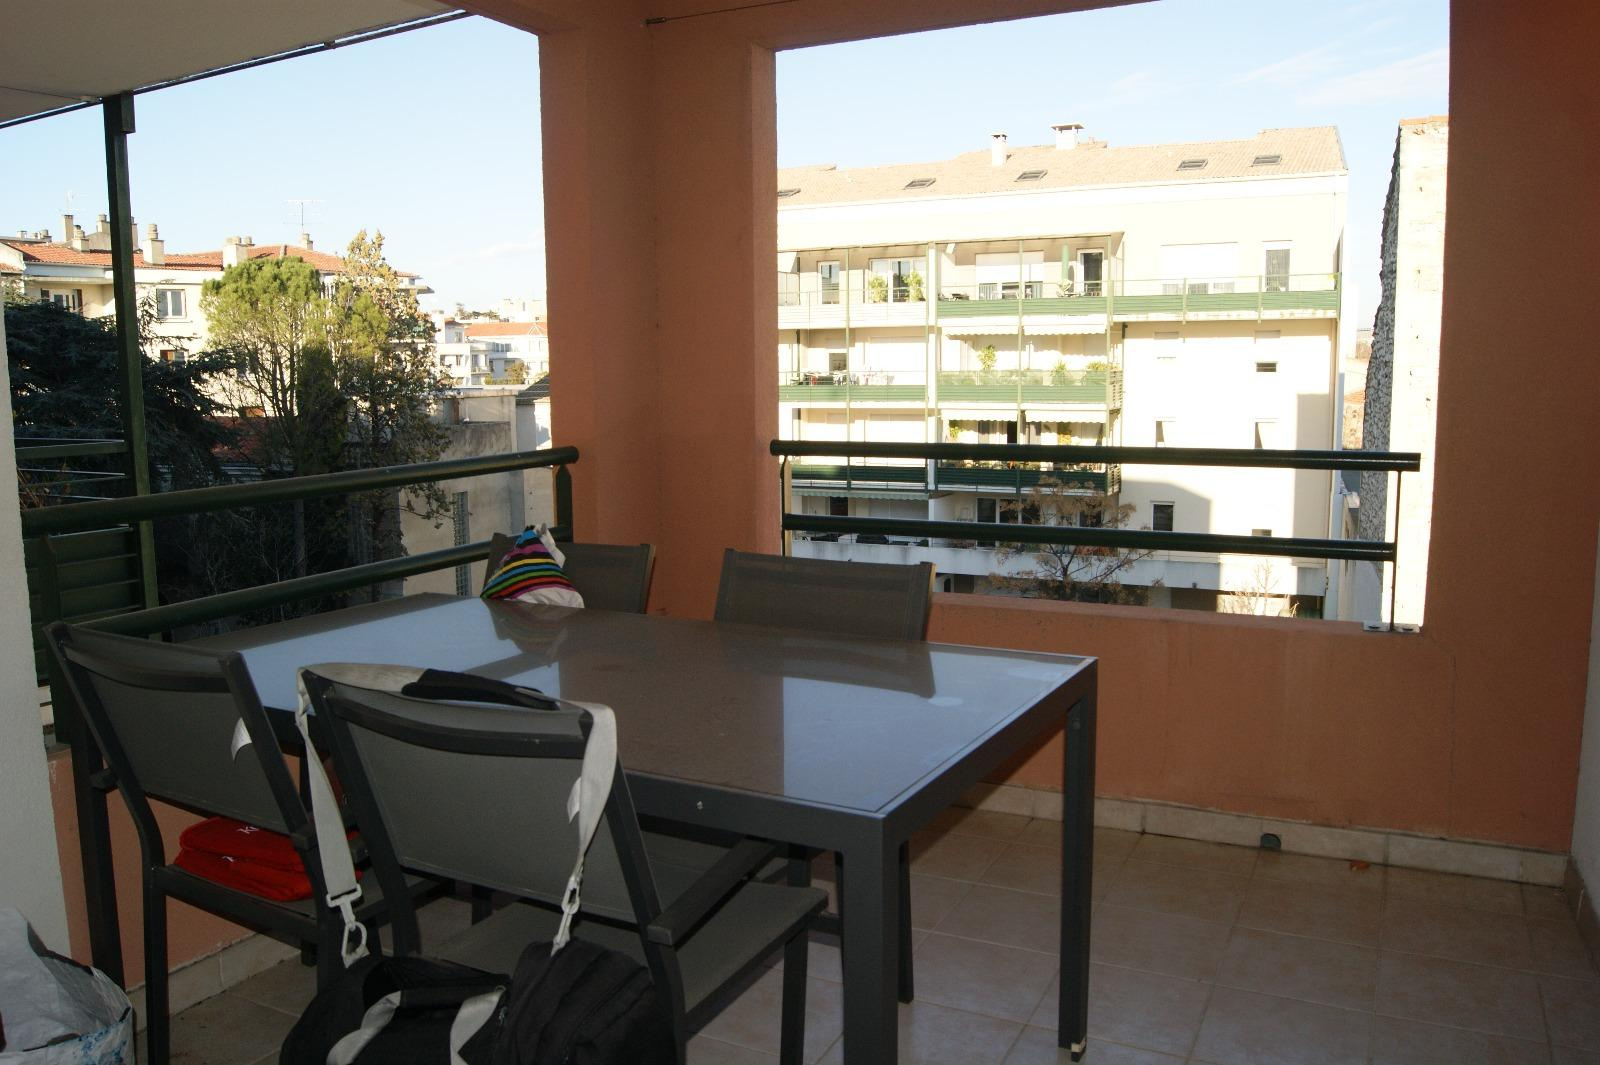 Agence immobili re montaury immobilier nimes vente et for Agence immobiliere 85